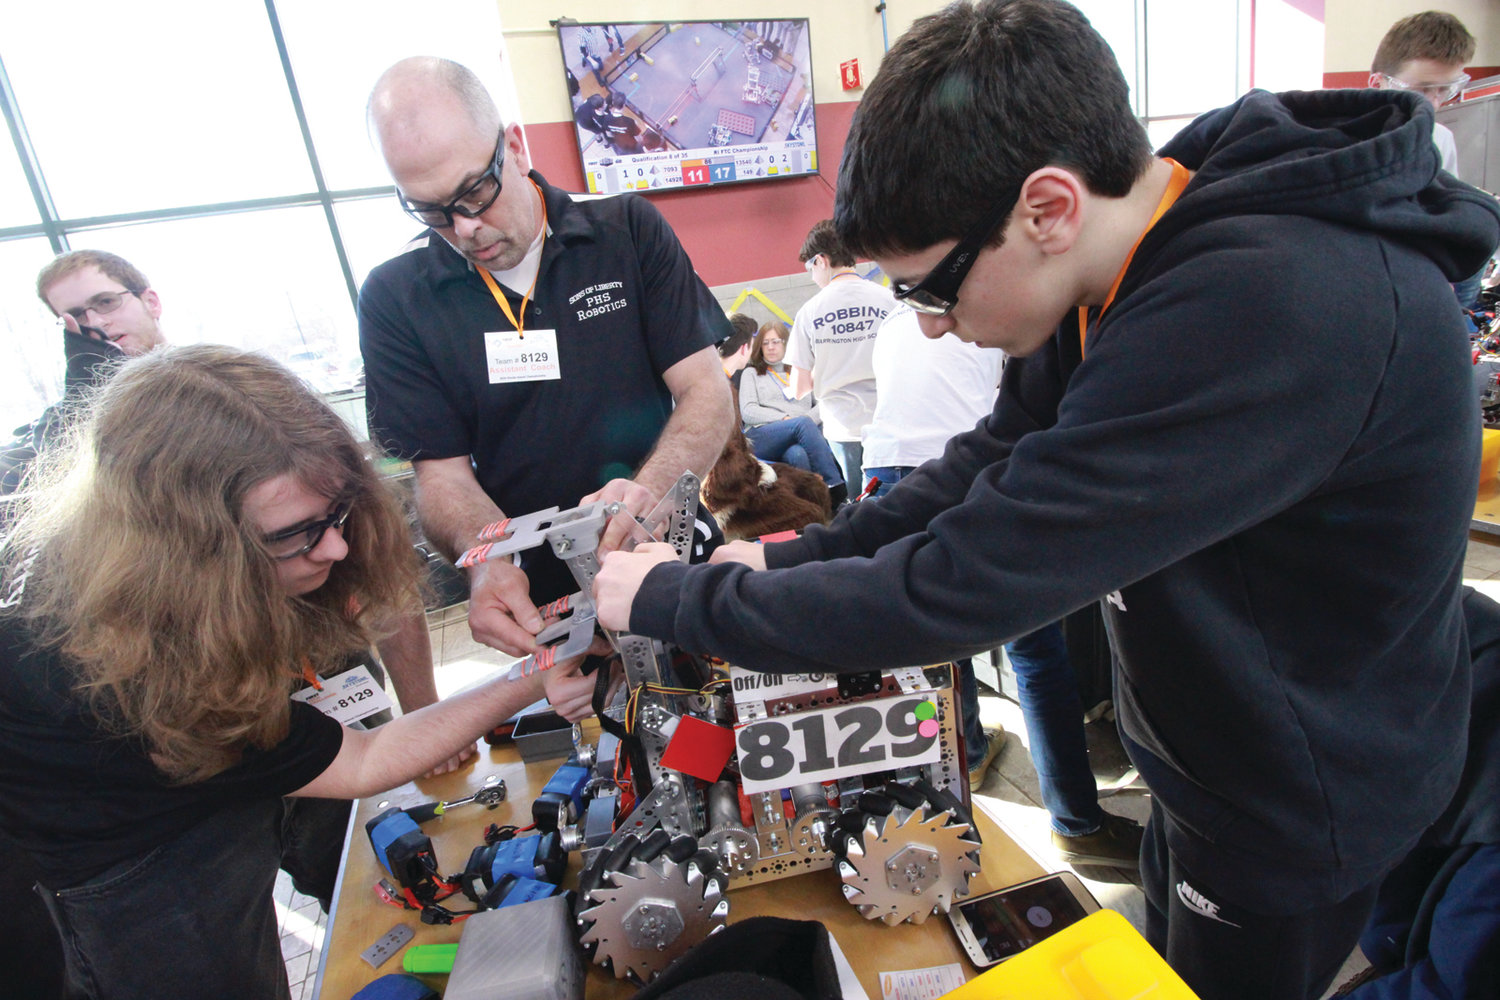 ADJUSTMENTS: Ryan Sanita, coach Larry West and John Miller make adjustments to the Pilgrim robot between rounds in Saturday's competition.